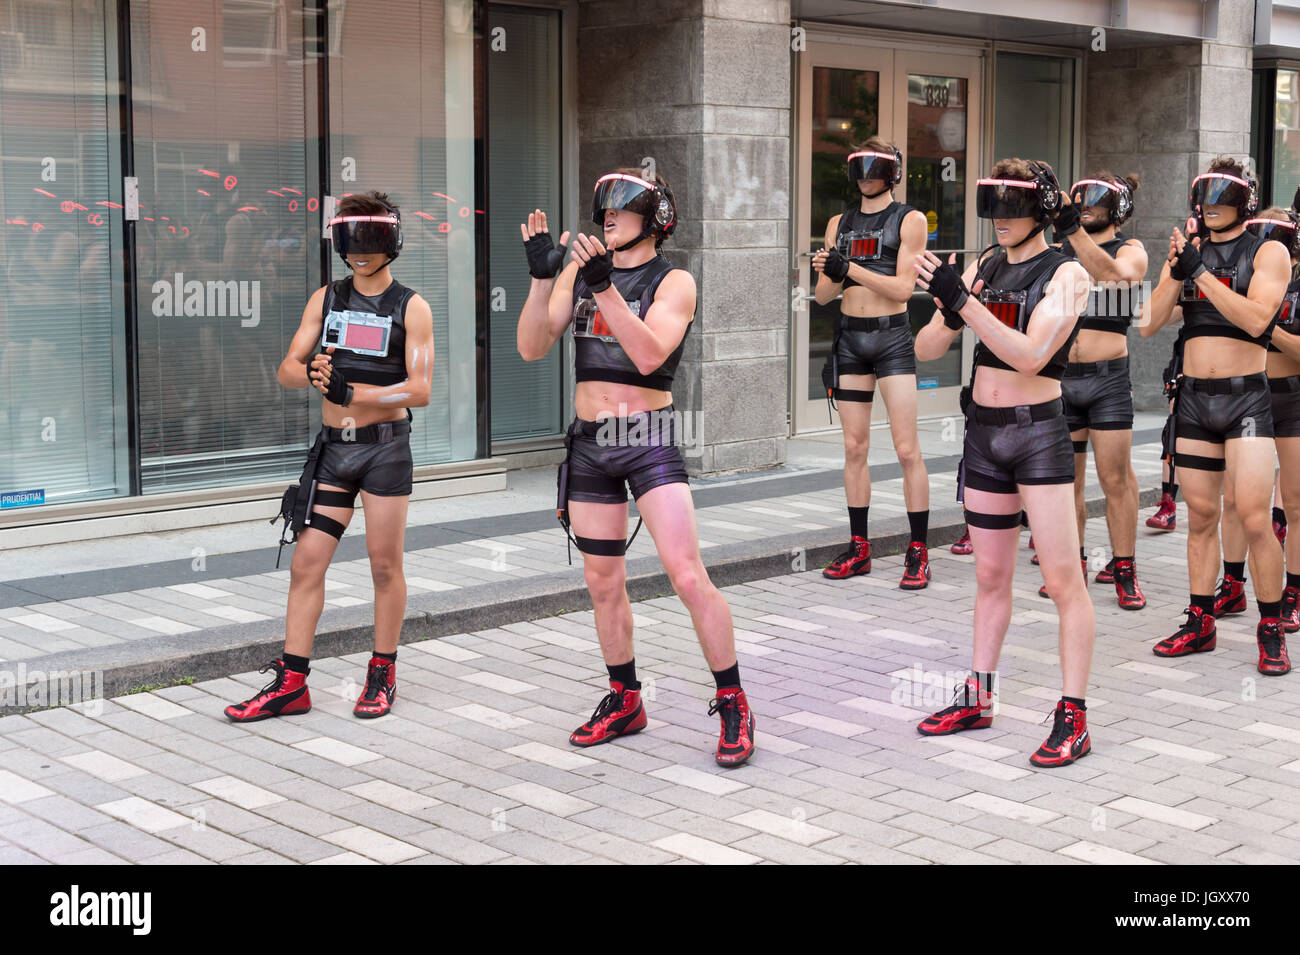 """Minutiens"" Street performers with VR headsets during Montreal Circus Arts Festival 2017 Stock Photo"